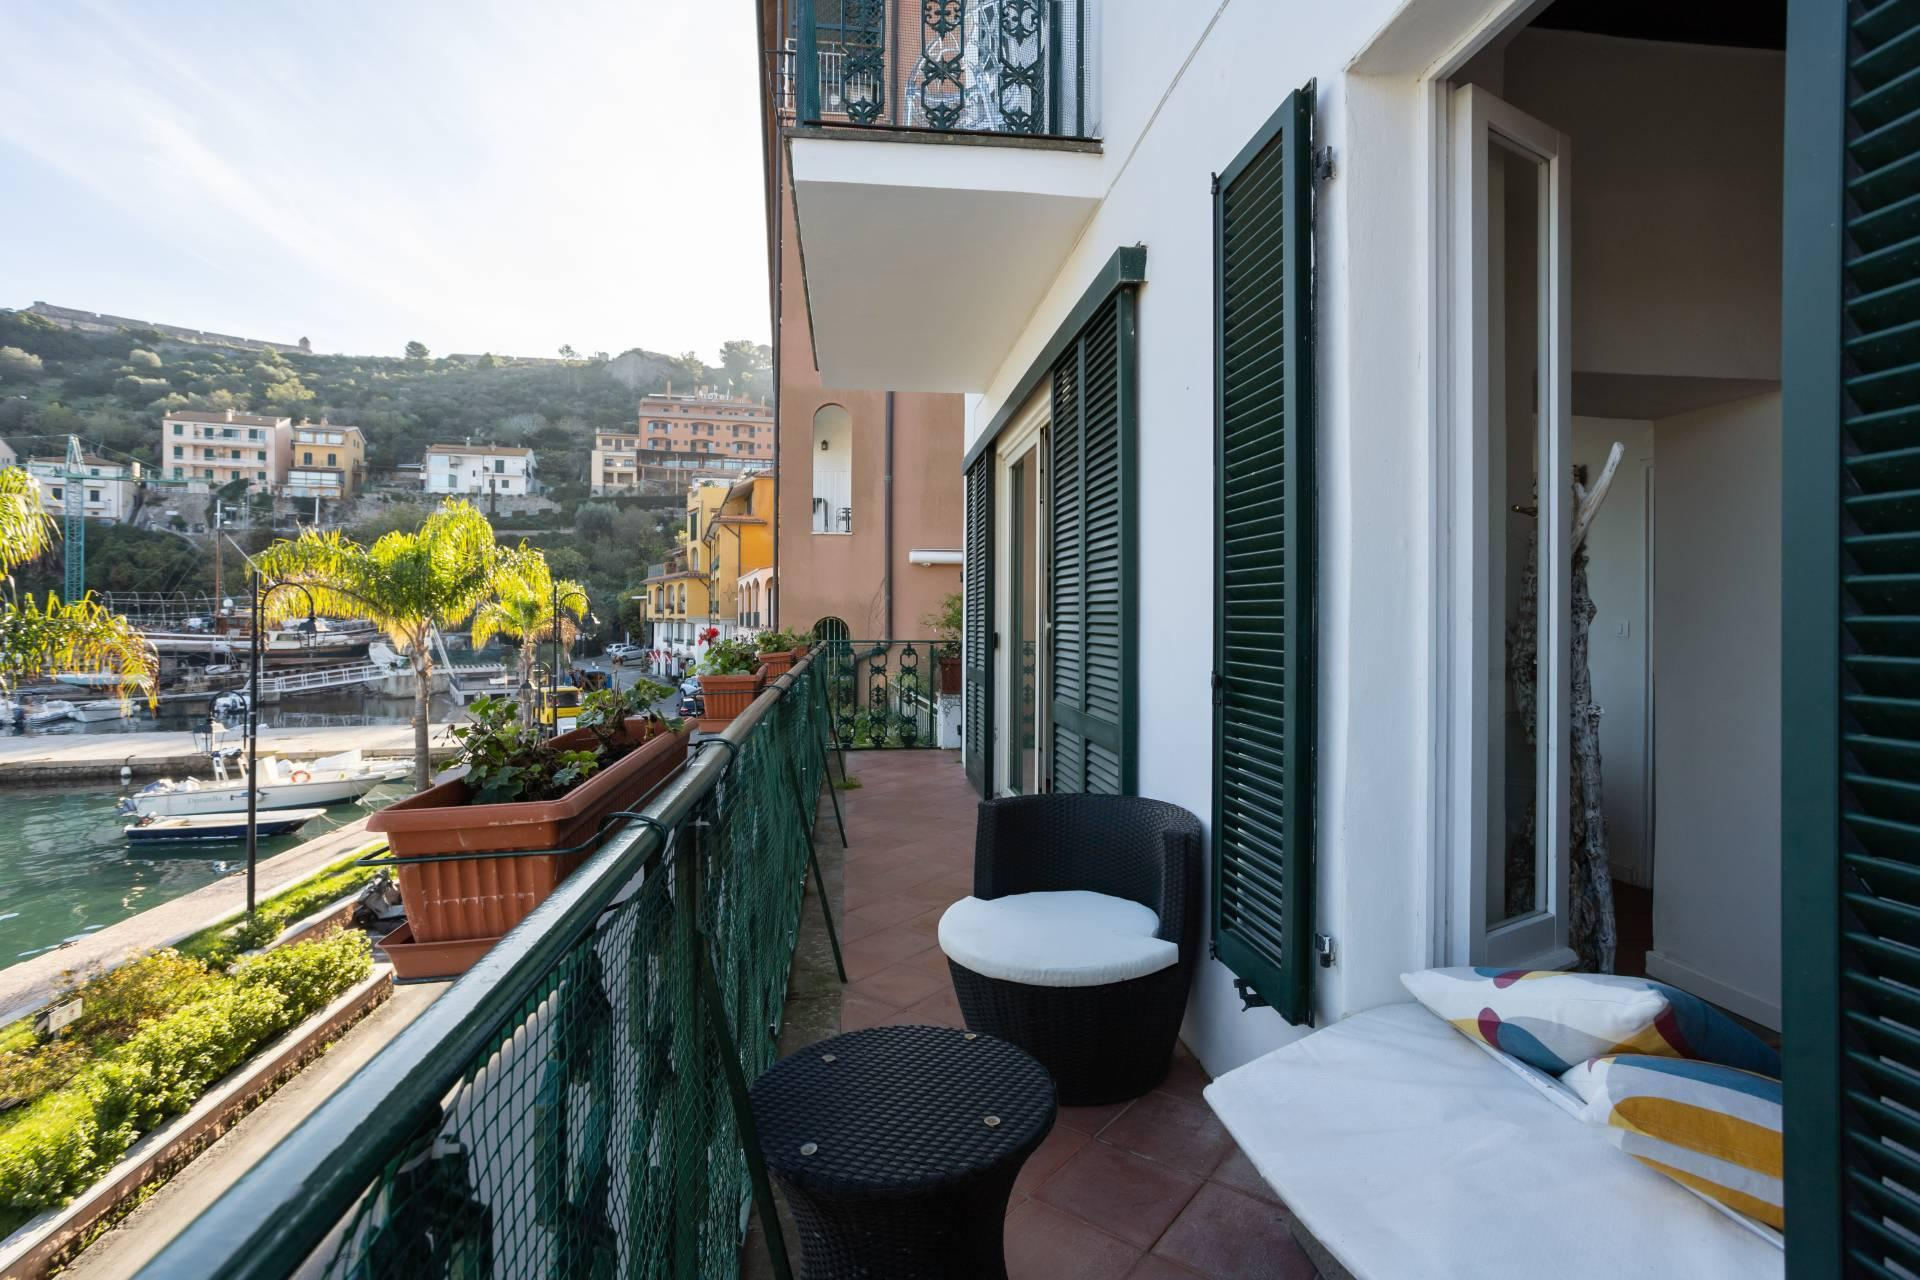 Porto Ercole - Stunning seafront family home with amazing views in historic building - 8